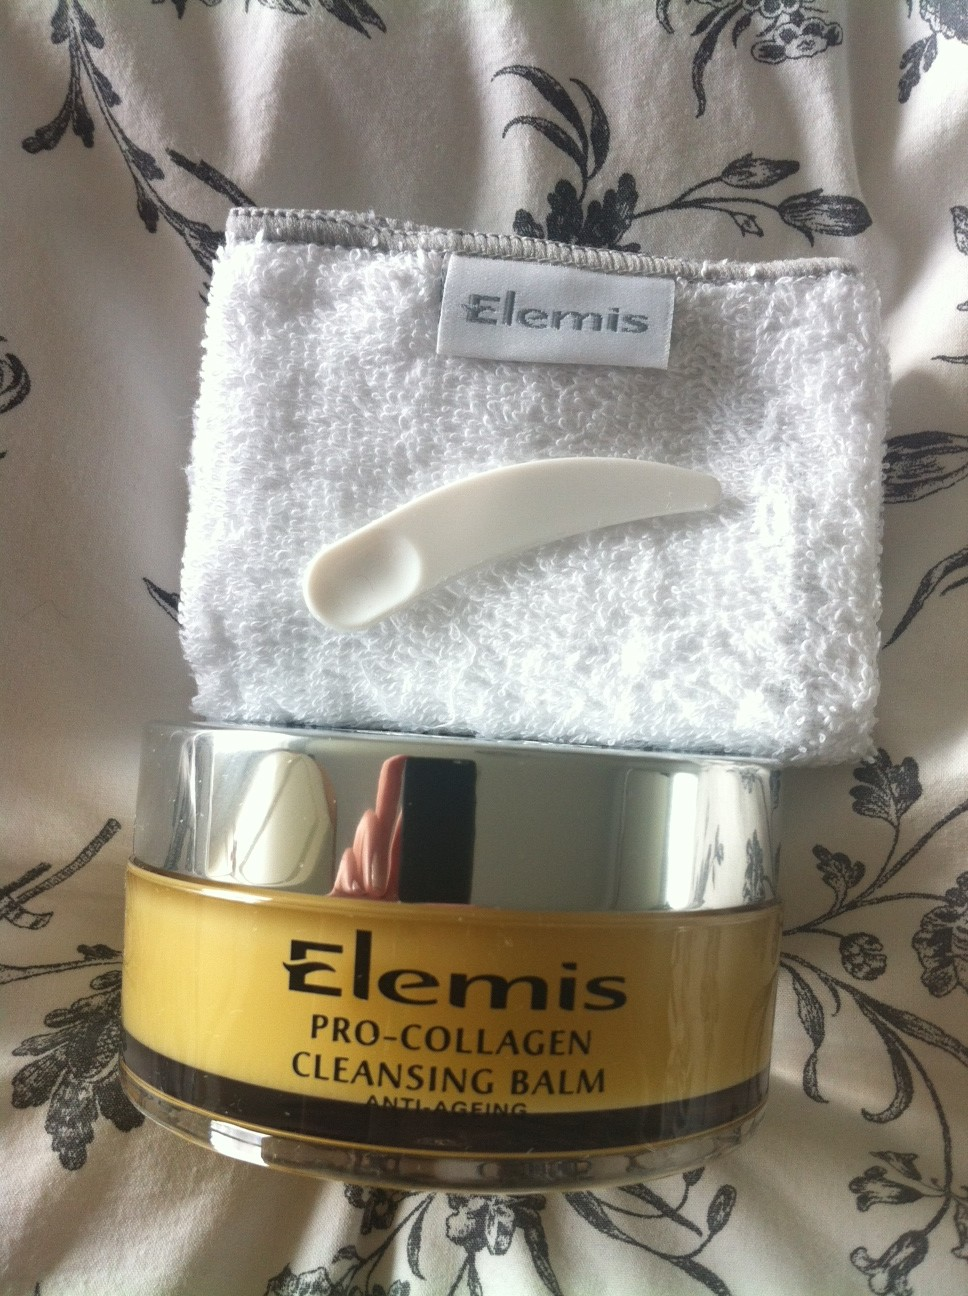 Autumnal cleansing: L'Oreal Skin Perfection range and Elemis Pro Collagen Cleansing Balm